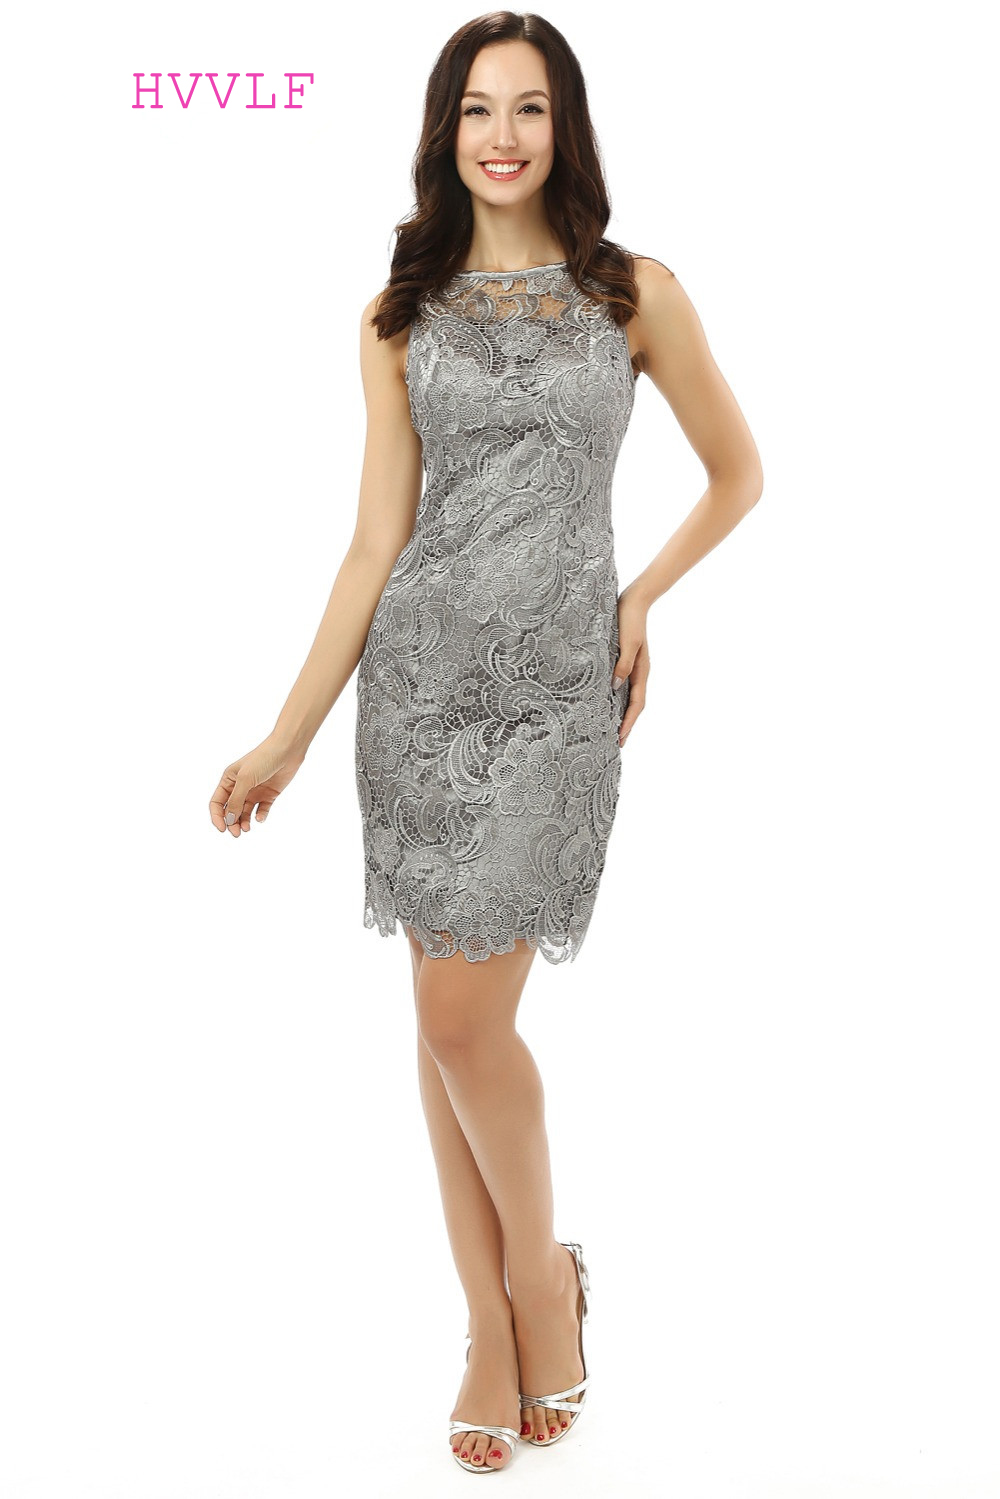 US $63.65 5% OFF Open Back 2019 Mother Of The Bride Dresses Sheath Knee  Length Gray Lace Formal Groom Plus Size Short Mother Dresses For Wedding-in  ...